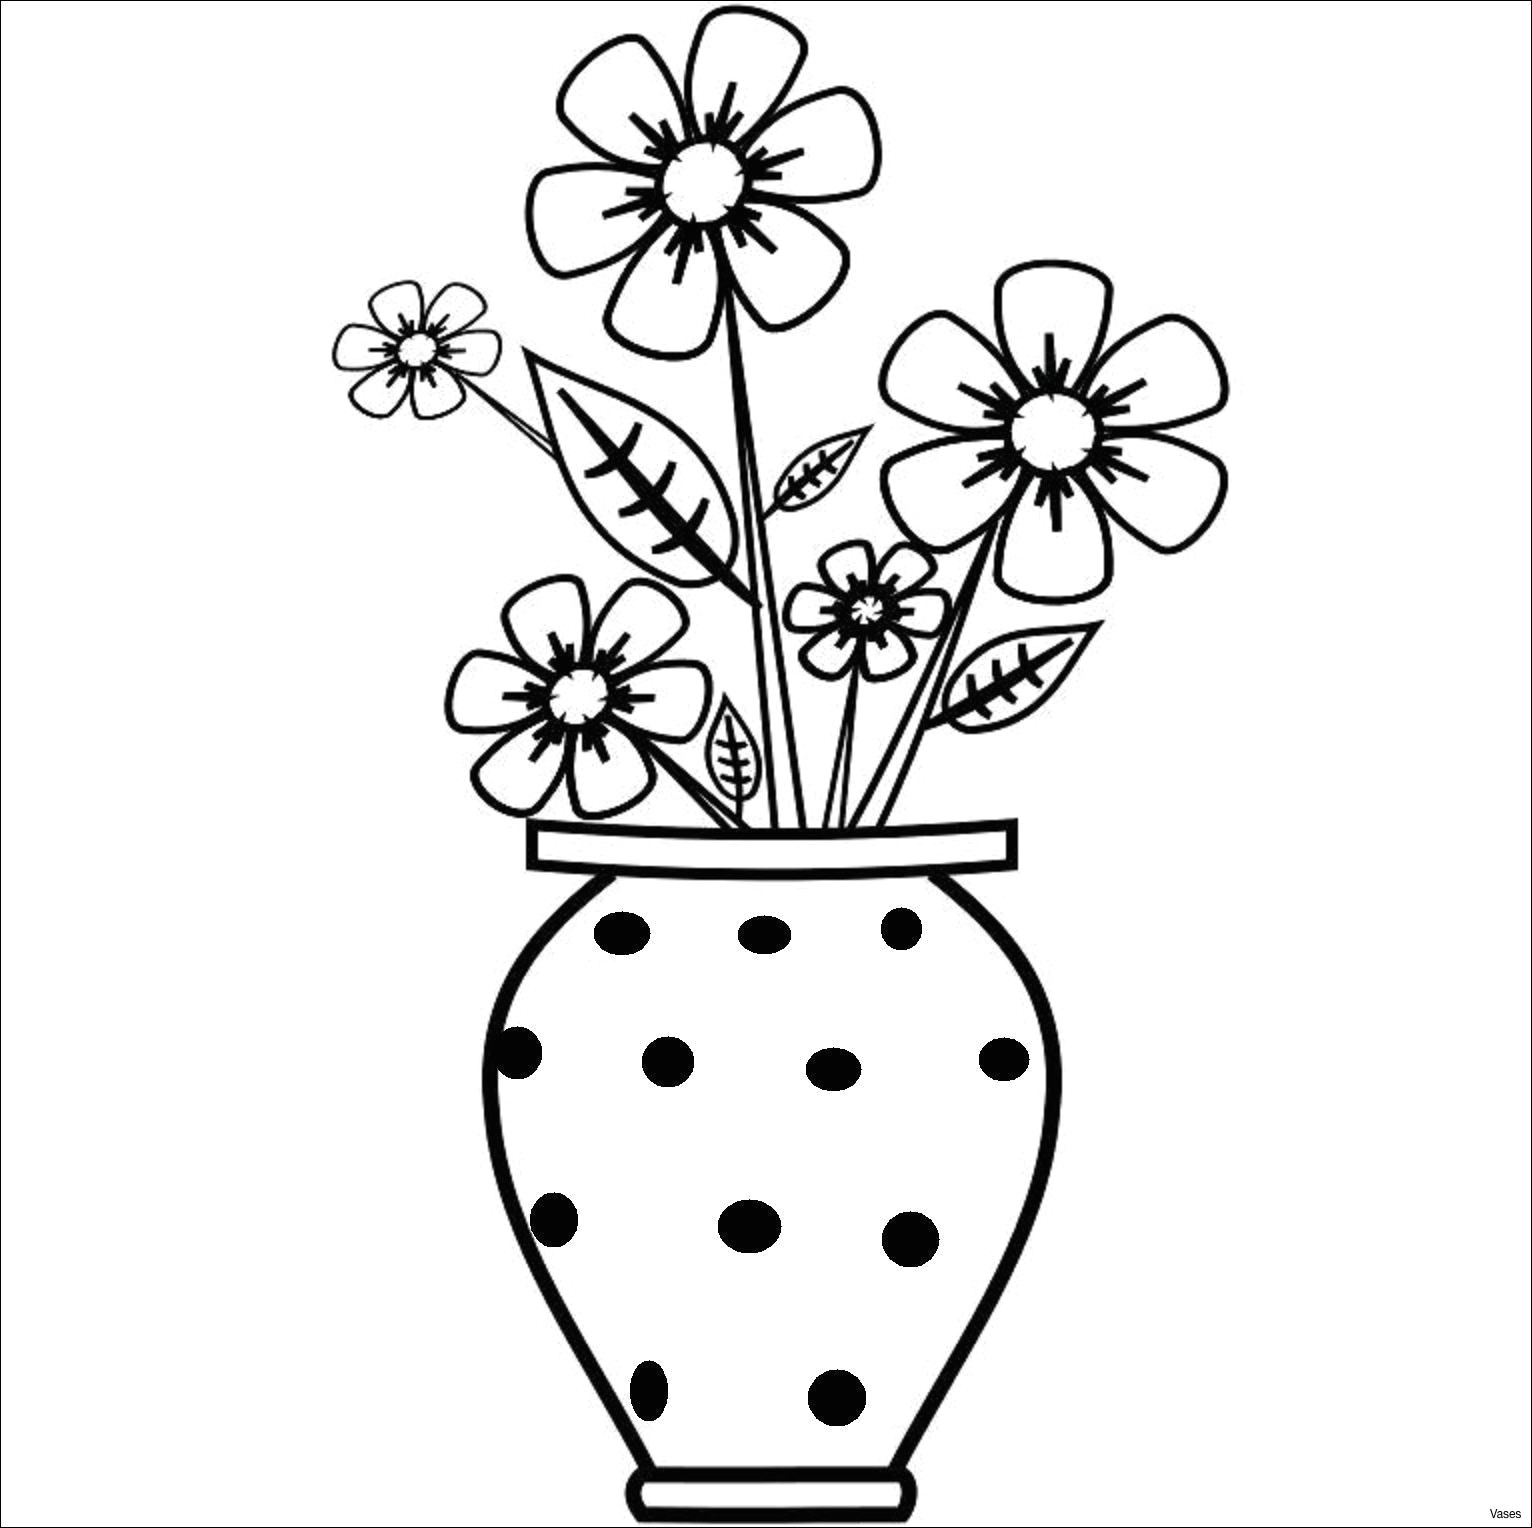 images of easy drawings vase art drawings how to draw a vase step 2h vases by